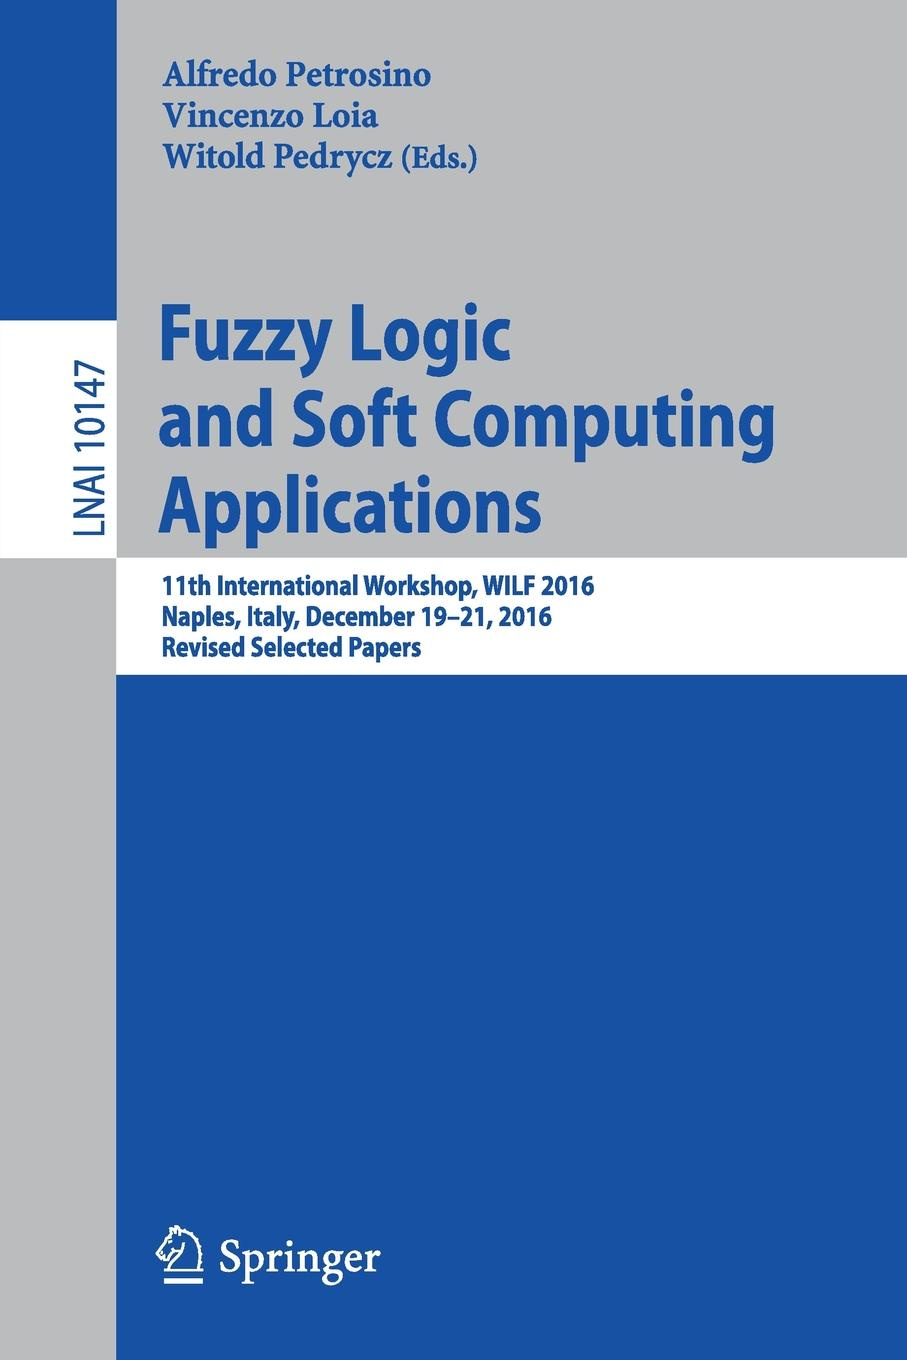 Fuzzy Logic and Soft Computing Applications. 11th International Workshop, WILF 2016, Naples, Italy, December 19-21, 2016, Revised Selected Papers timothy ross j fuzzy logic with engineering applications